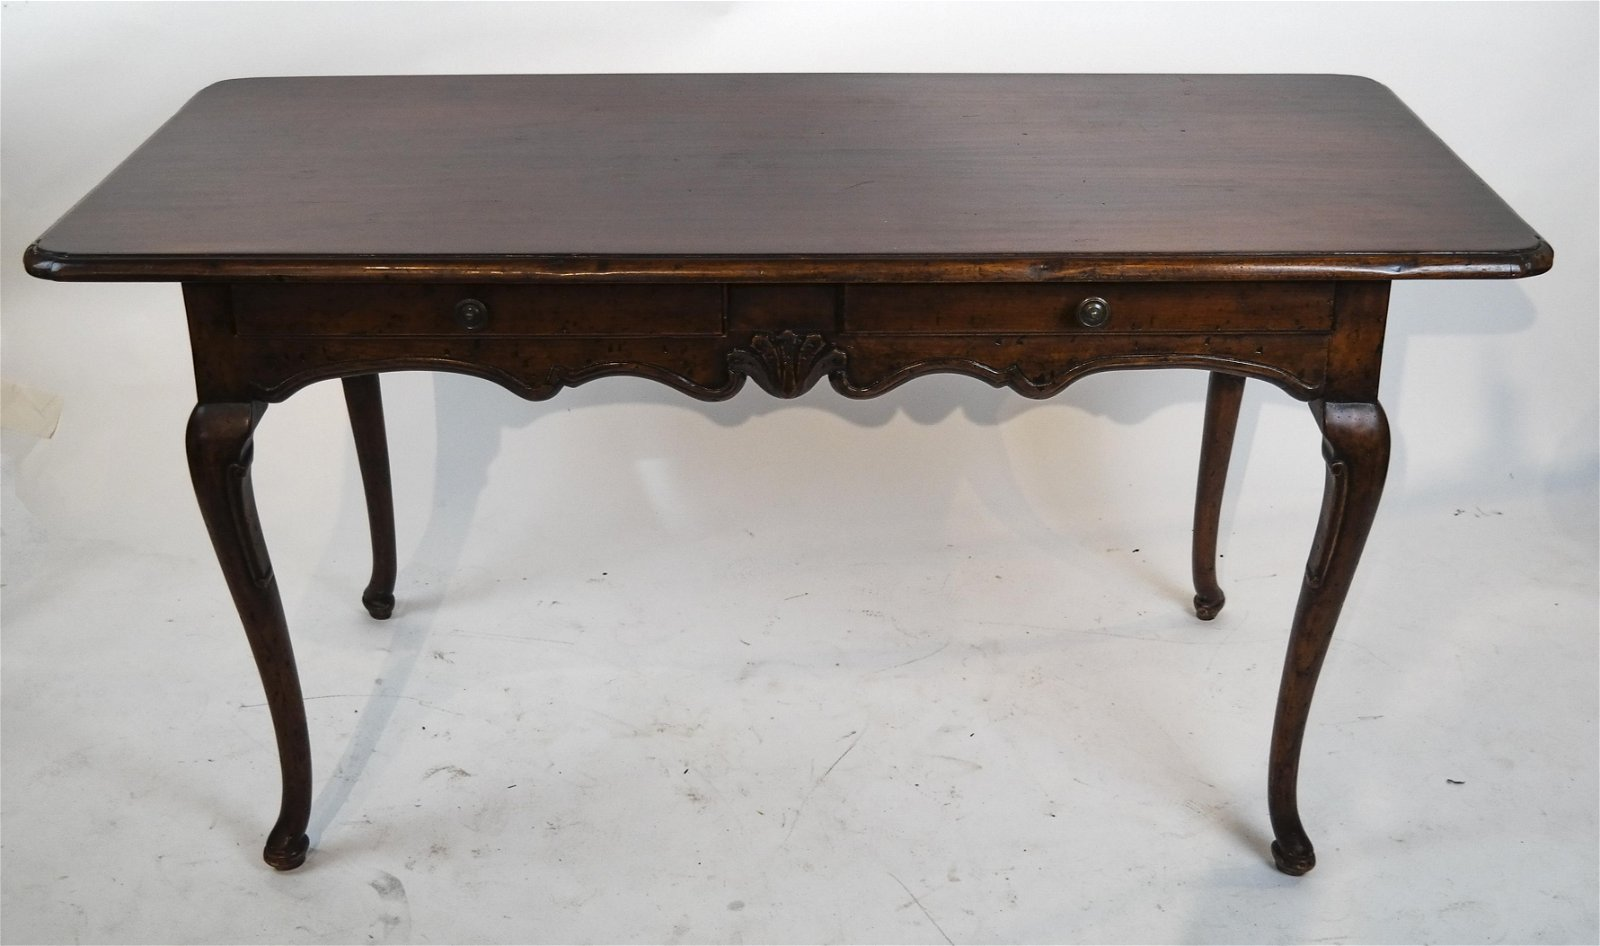 French Provincial-Style Two-Drawer Desk